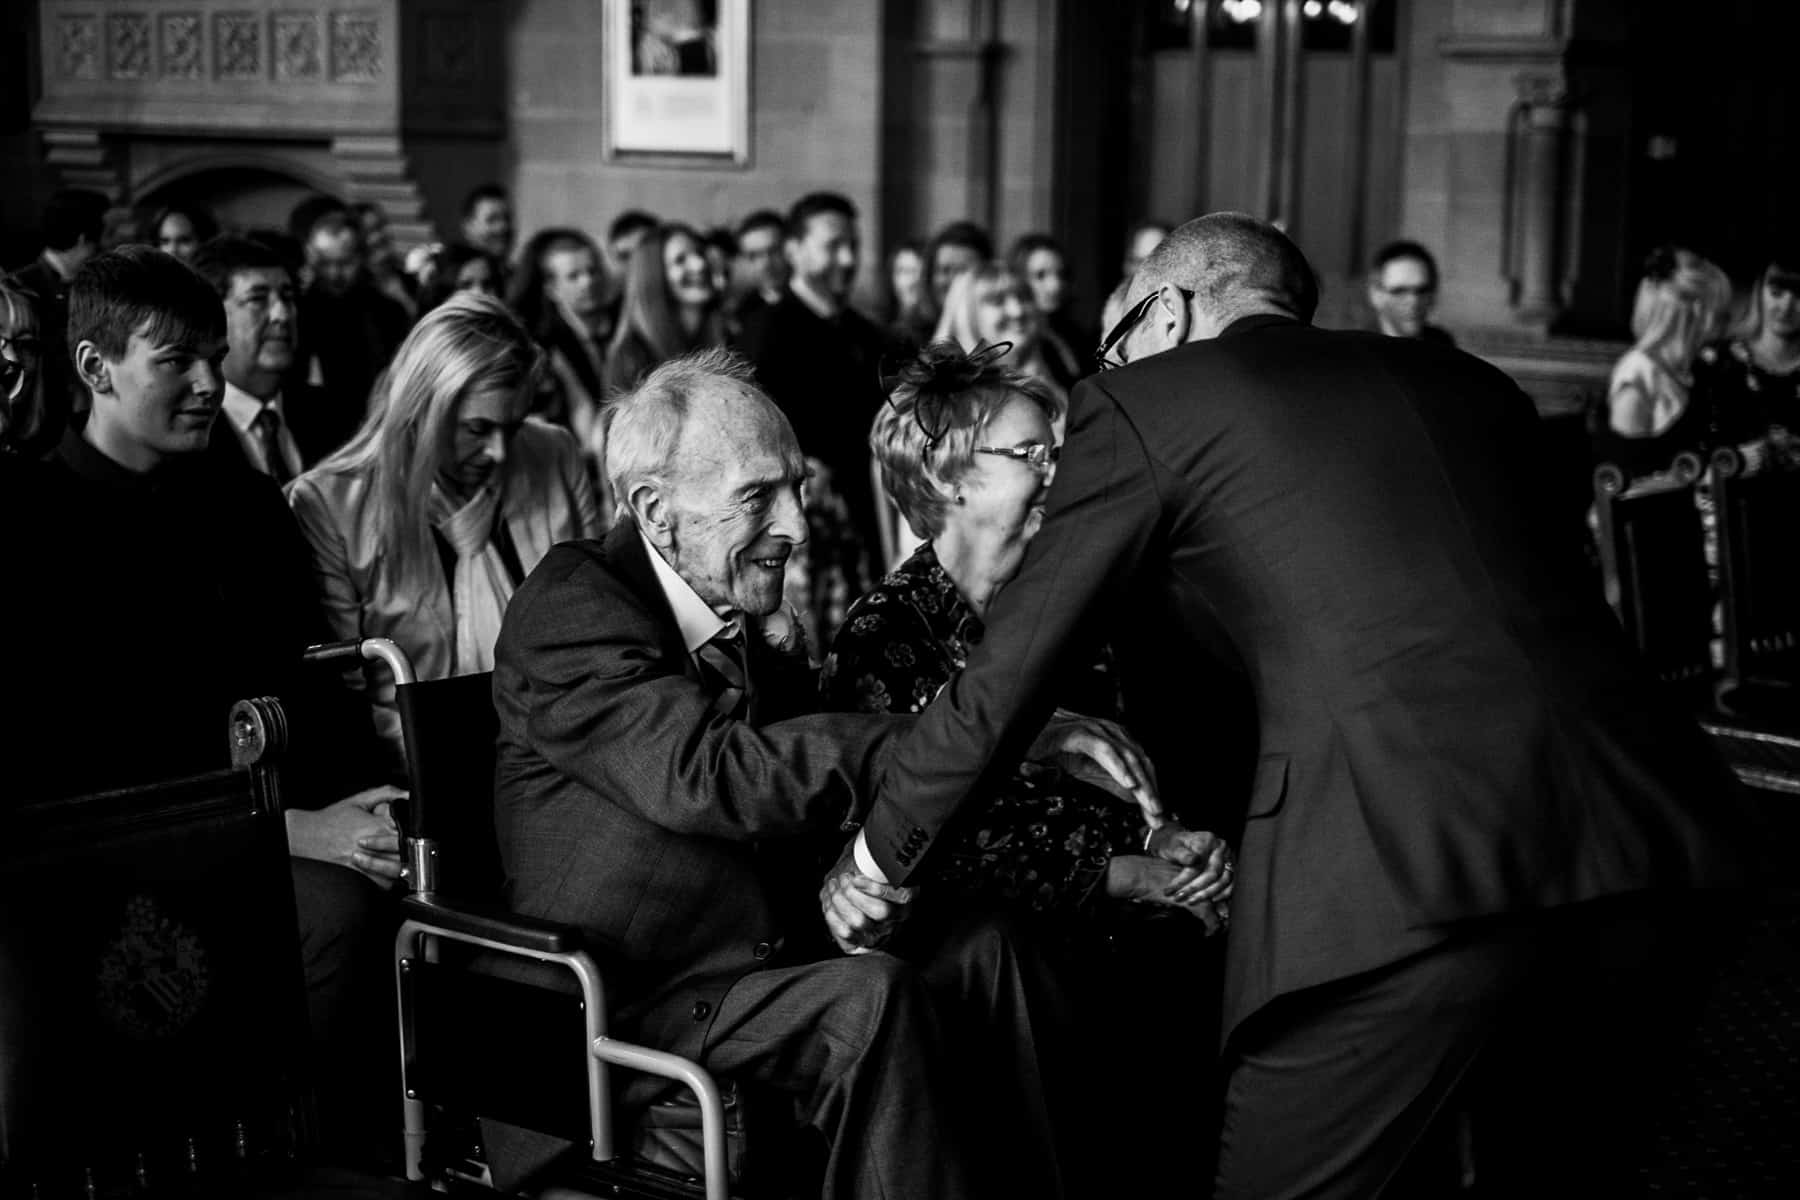 Grandfather and groom share a tender moment